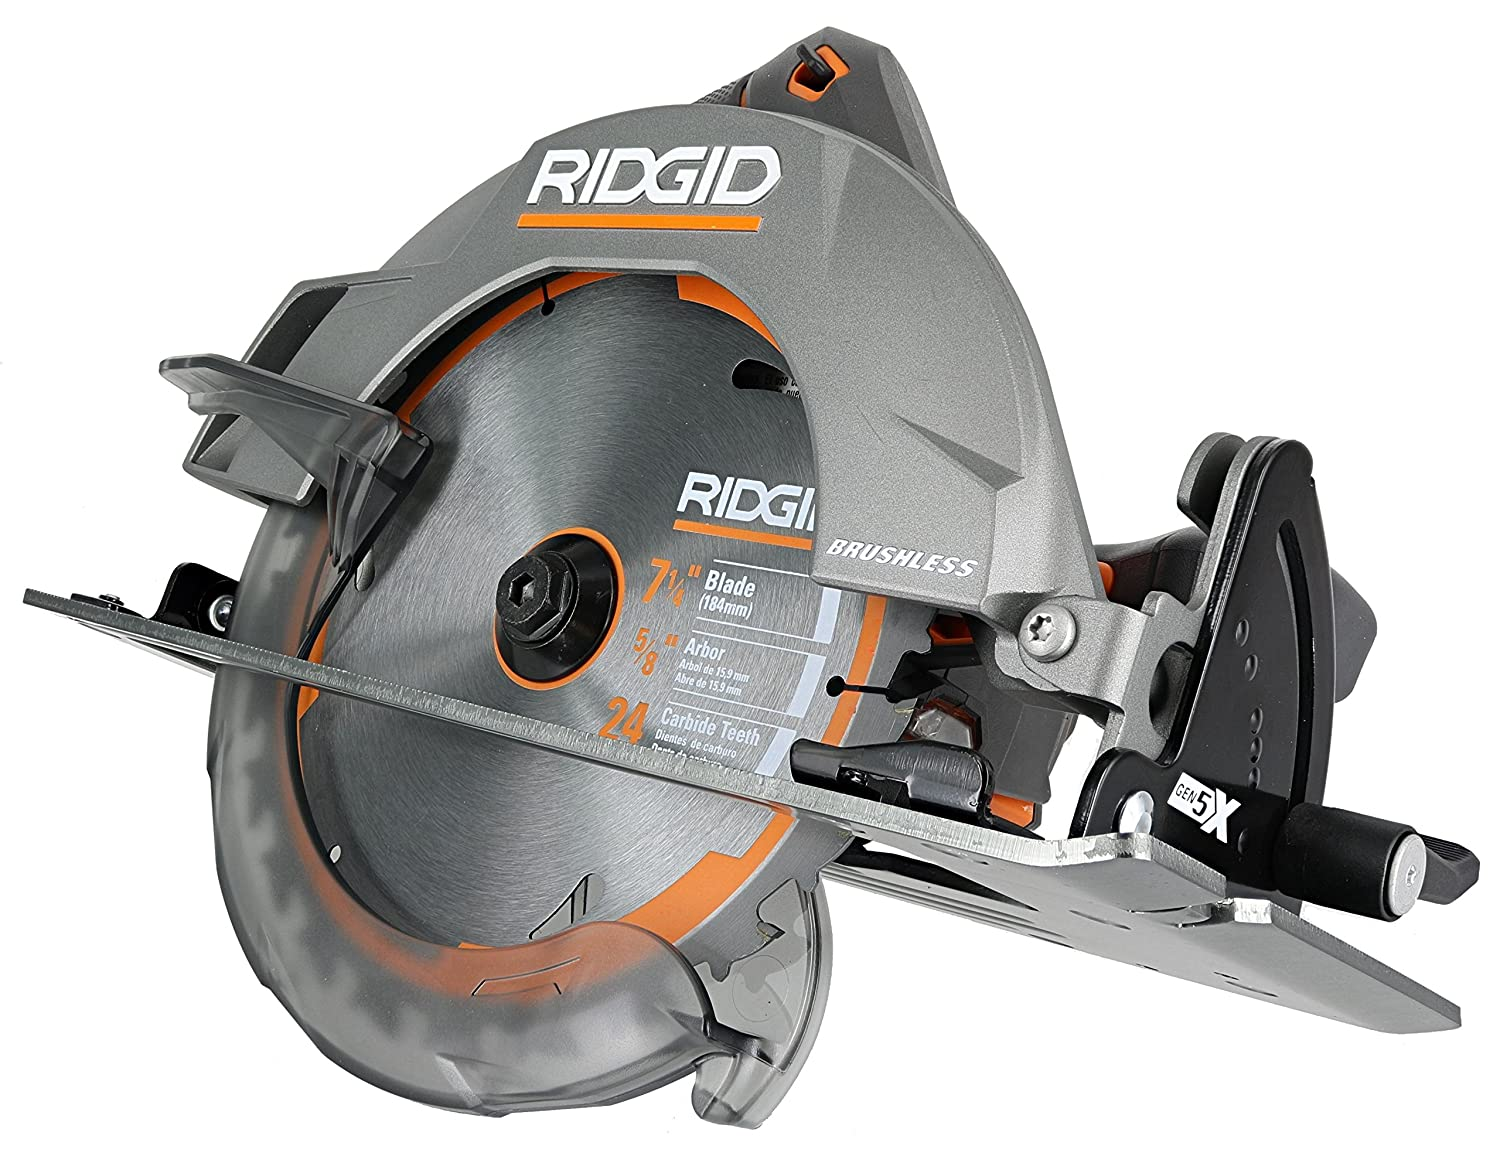 Ridgid r8653 gen5x brushless 18v lithium ion cordless 7 14 inch 3 ridgid r8653 gen5x brushless 18v lithium ion cordless 7 14 inch 3 800 rpm circular saw with bevel and depth adjustment batteries not included greentooth Gallery